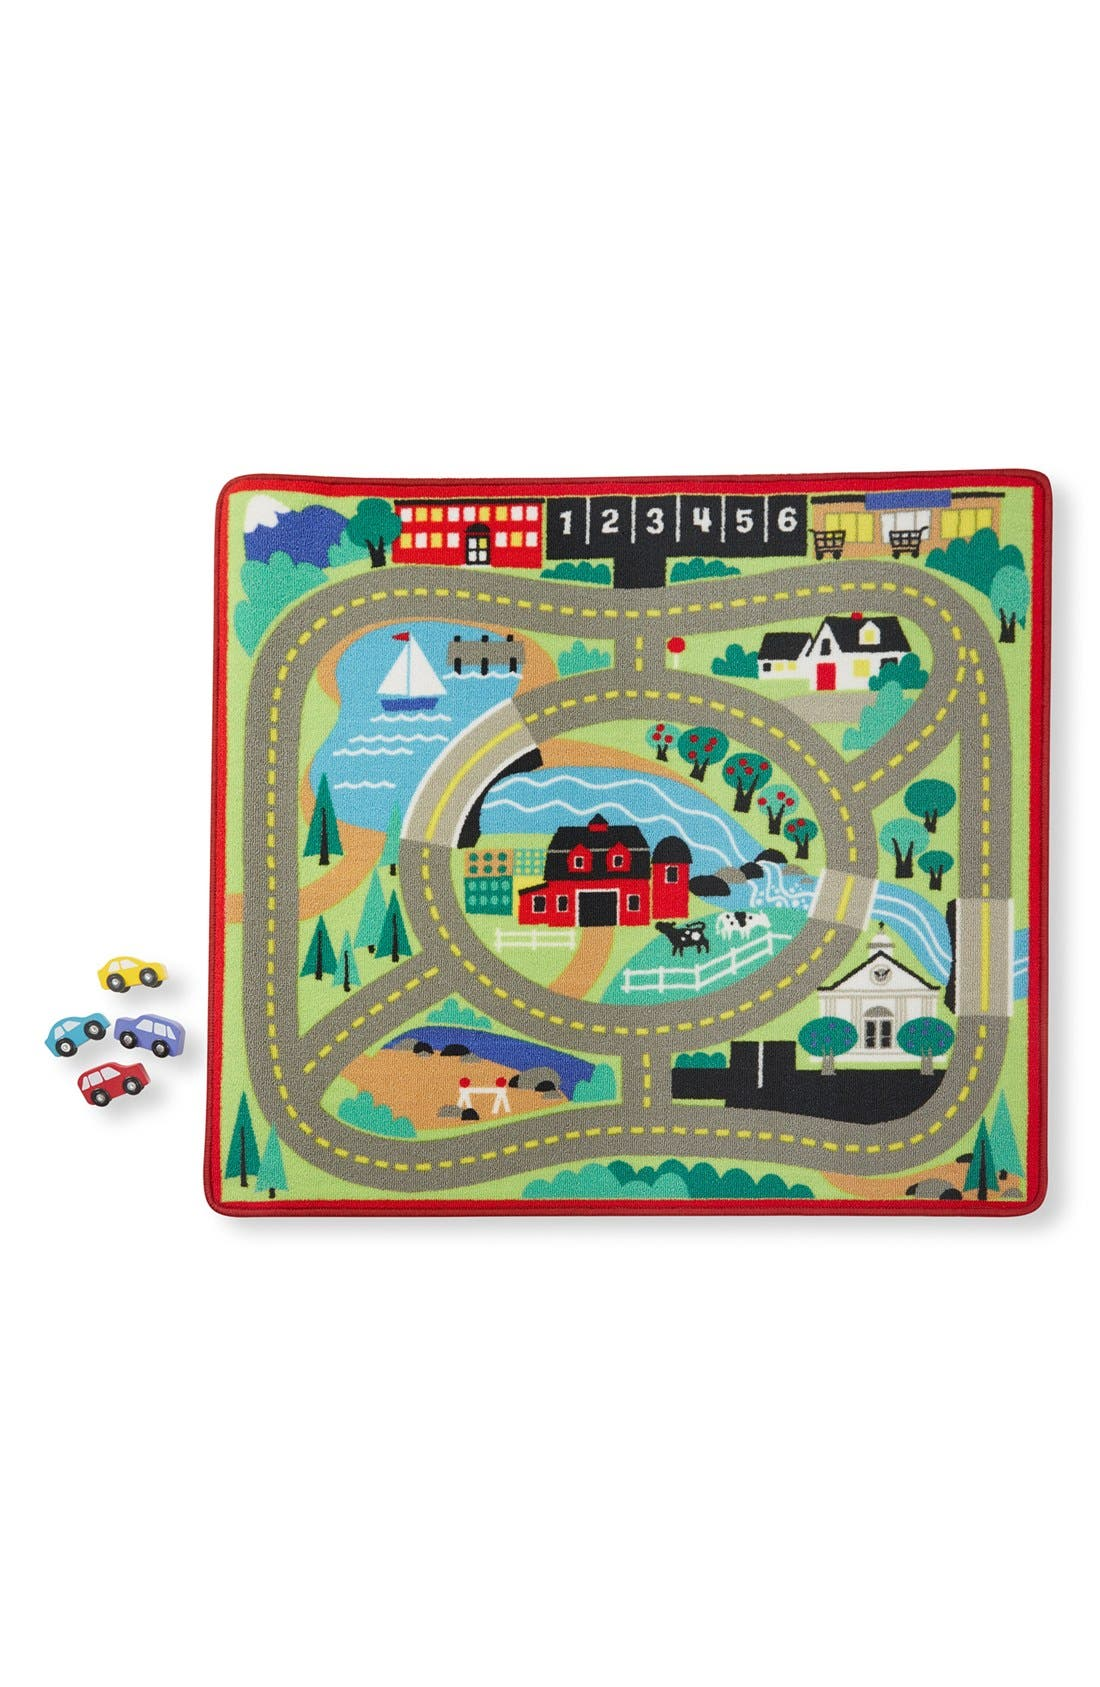 Toddler Melissa  Doug Round The Town Road Rug